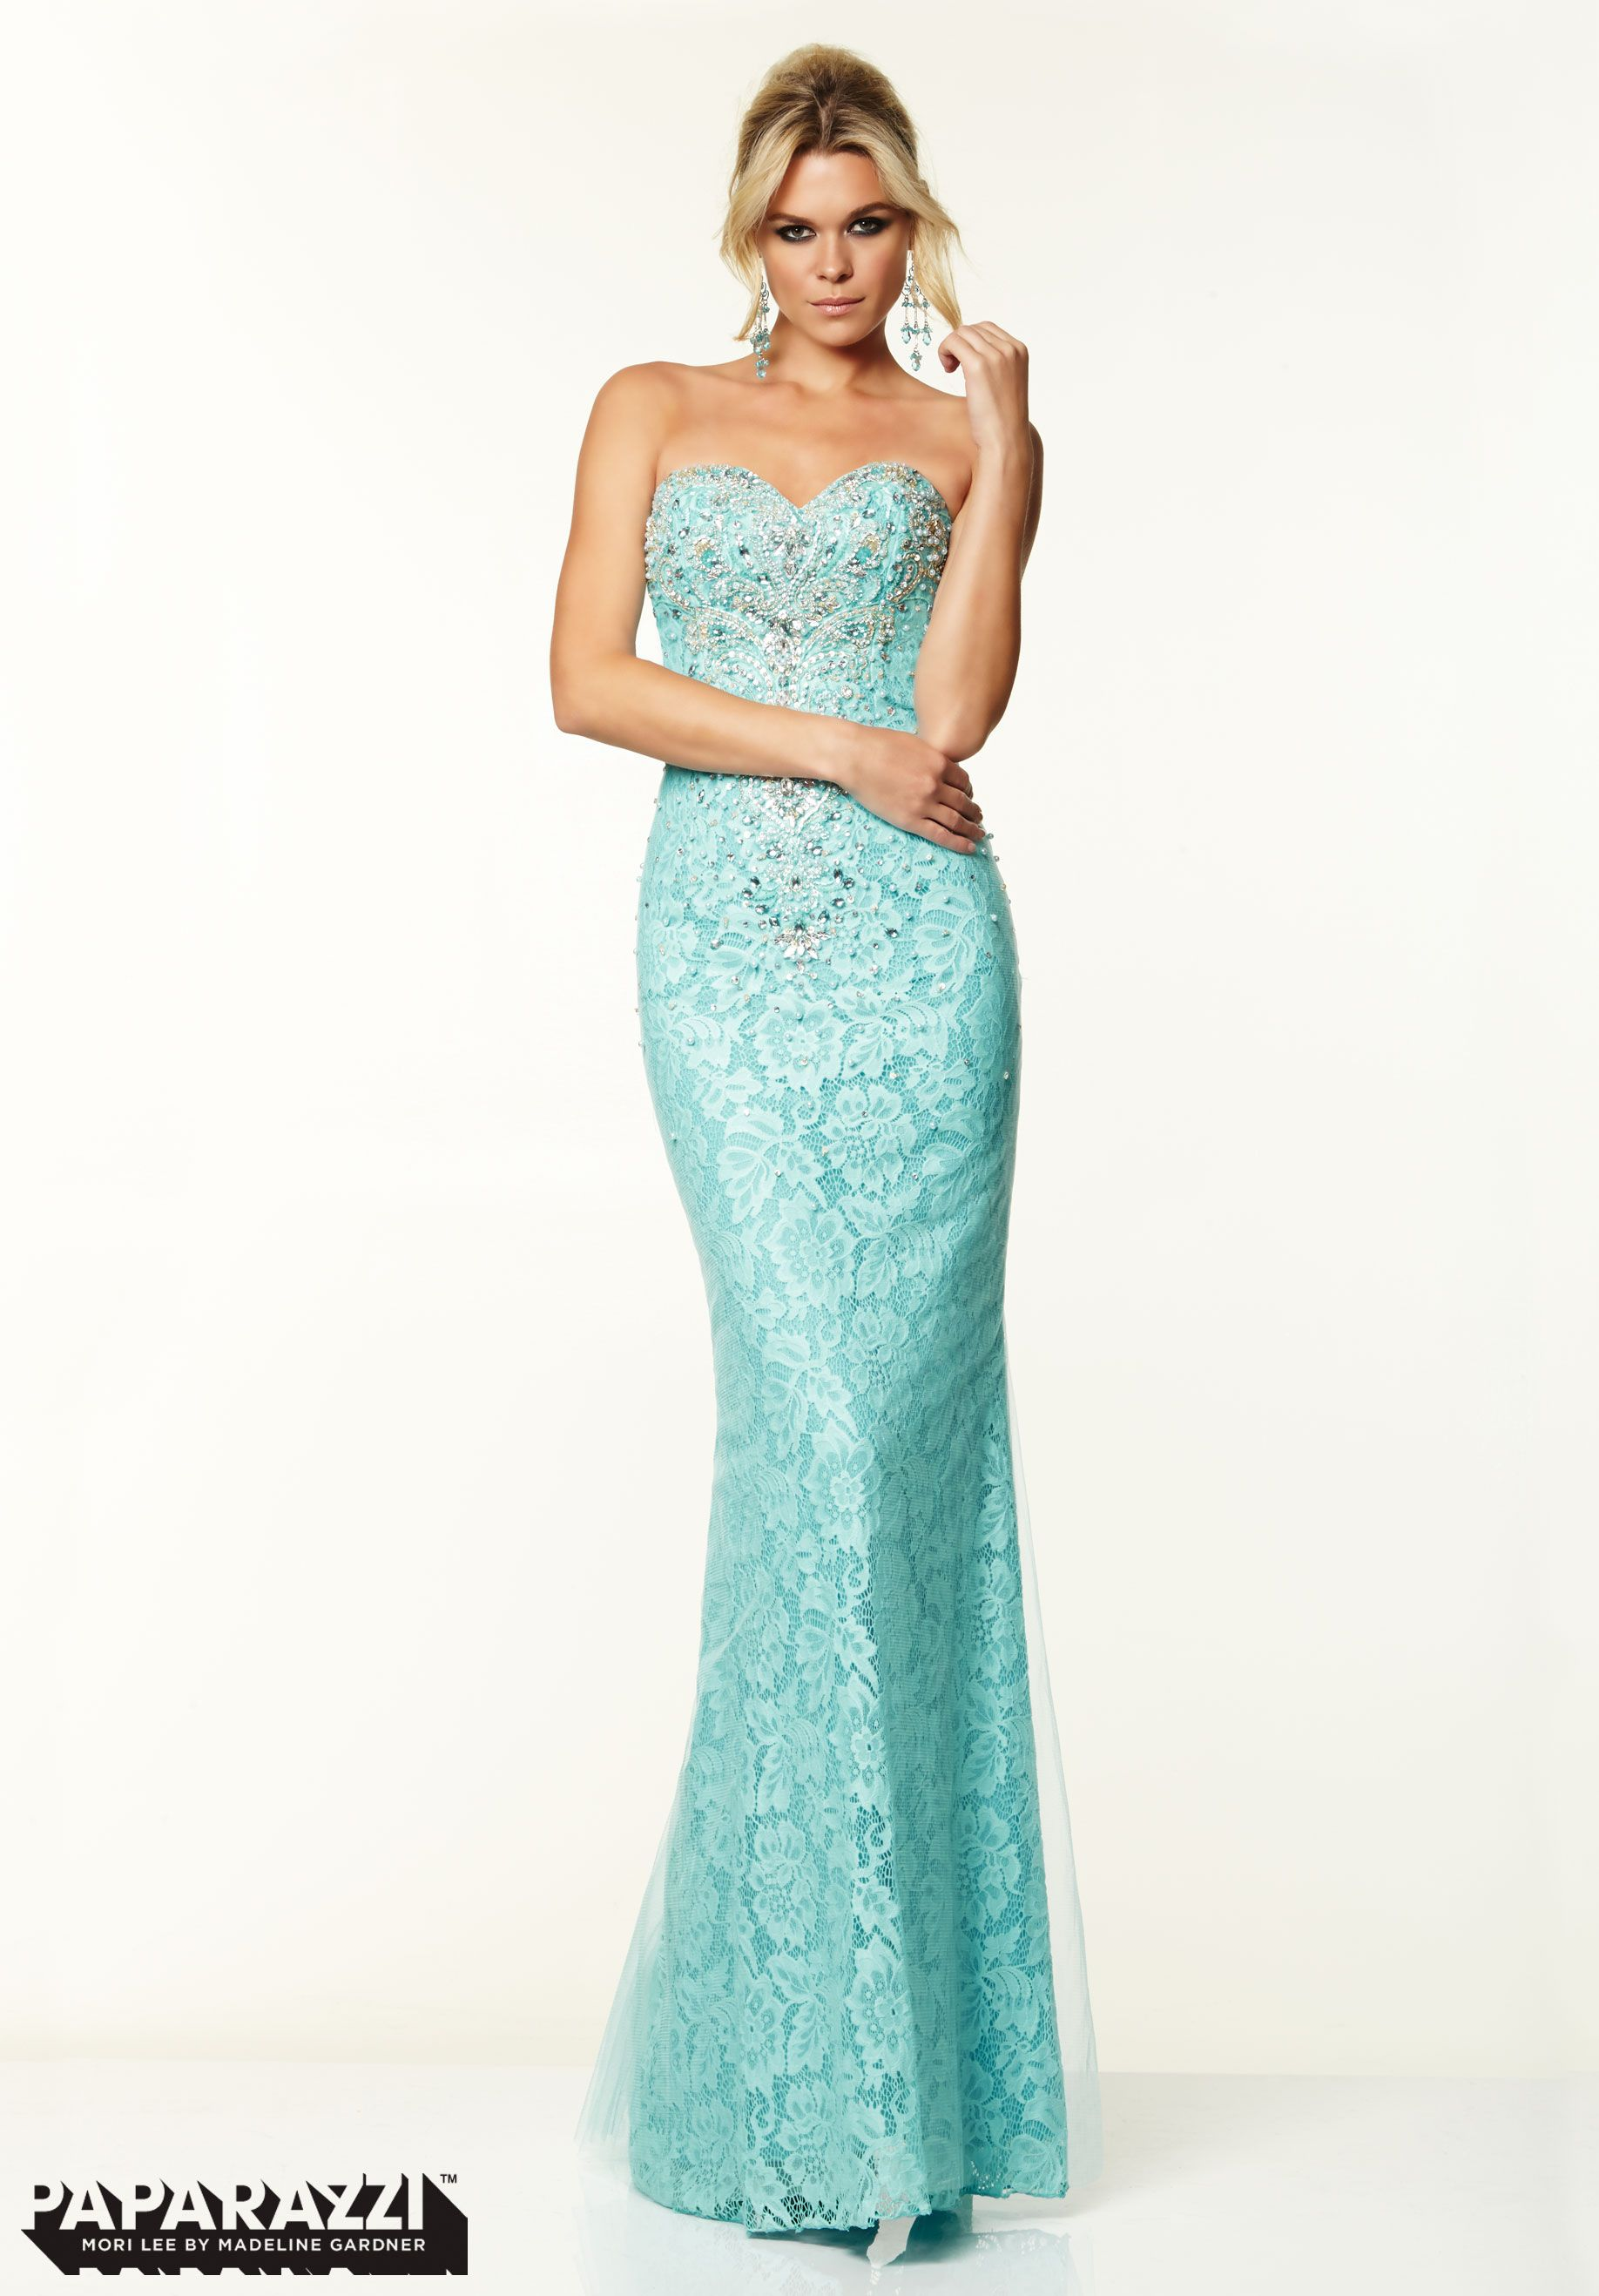 BD73 PAPARAZZI 97012 SZ 20 AQUA $448 #2253 FORMAL PAGEANT DRESS GOWN ...